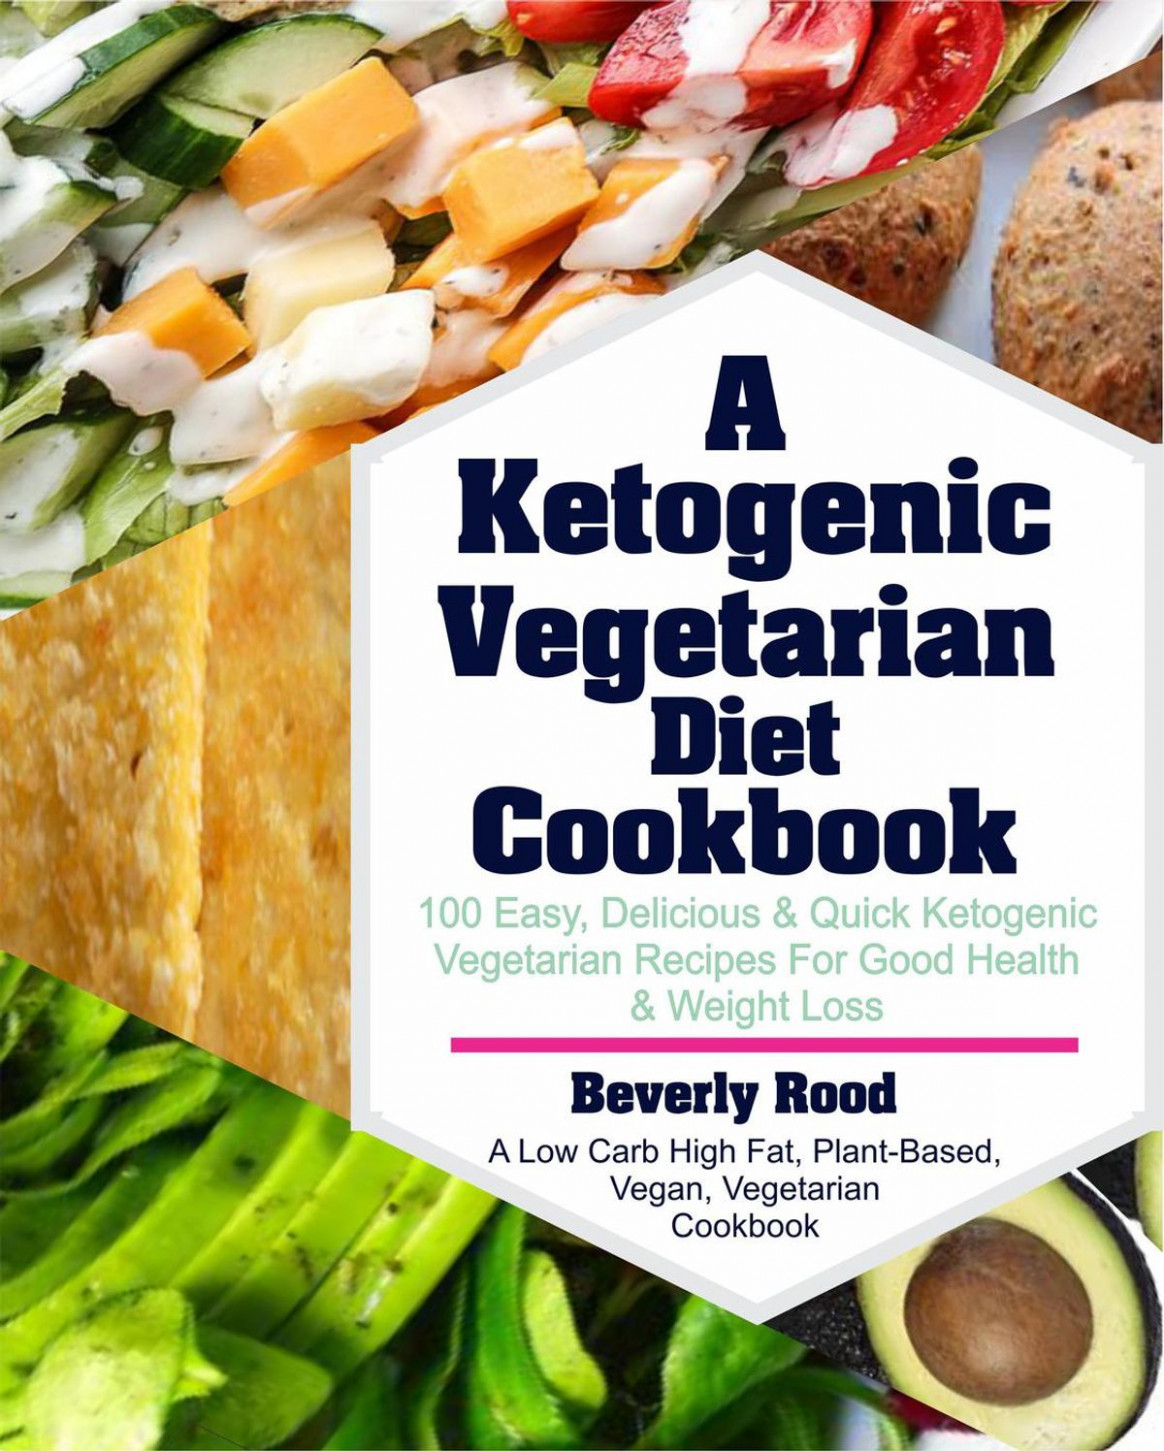 Ketogenic Vegetarian Diet Cookbook: 14 Easy, Delicious and Quick Ketogenic  Vegetarian Recipes For Good Health and Weight Loss (A Low Carb High Fat, ..